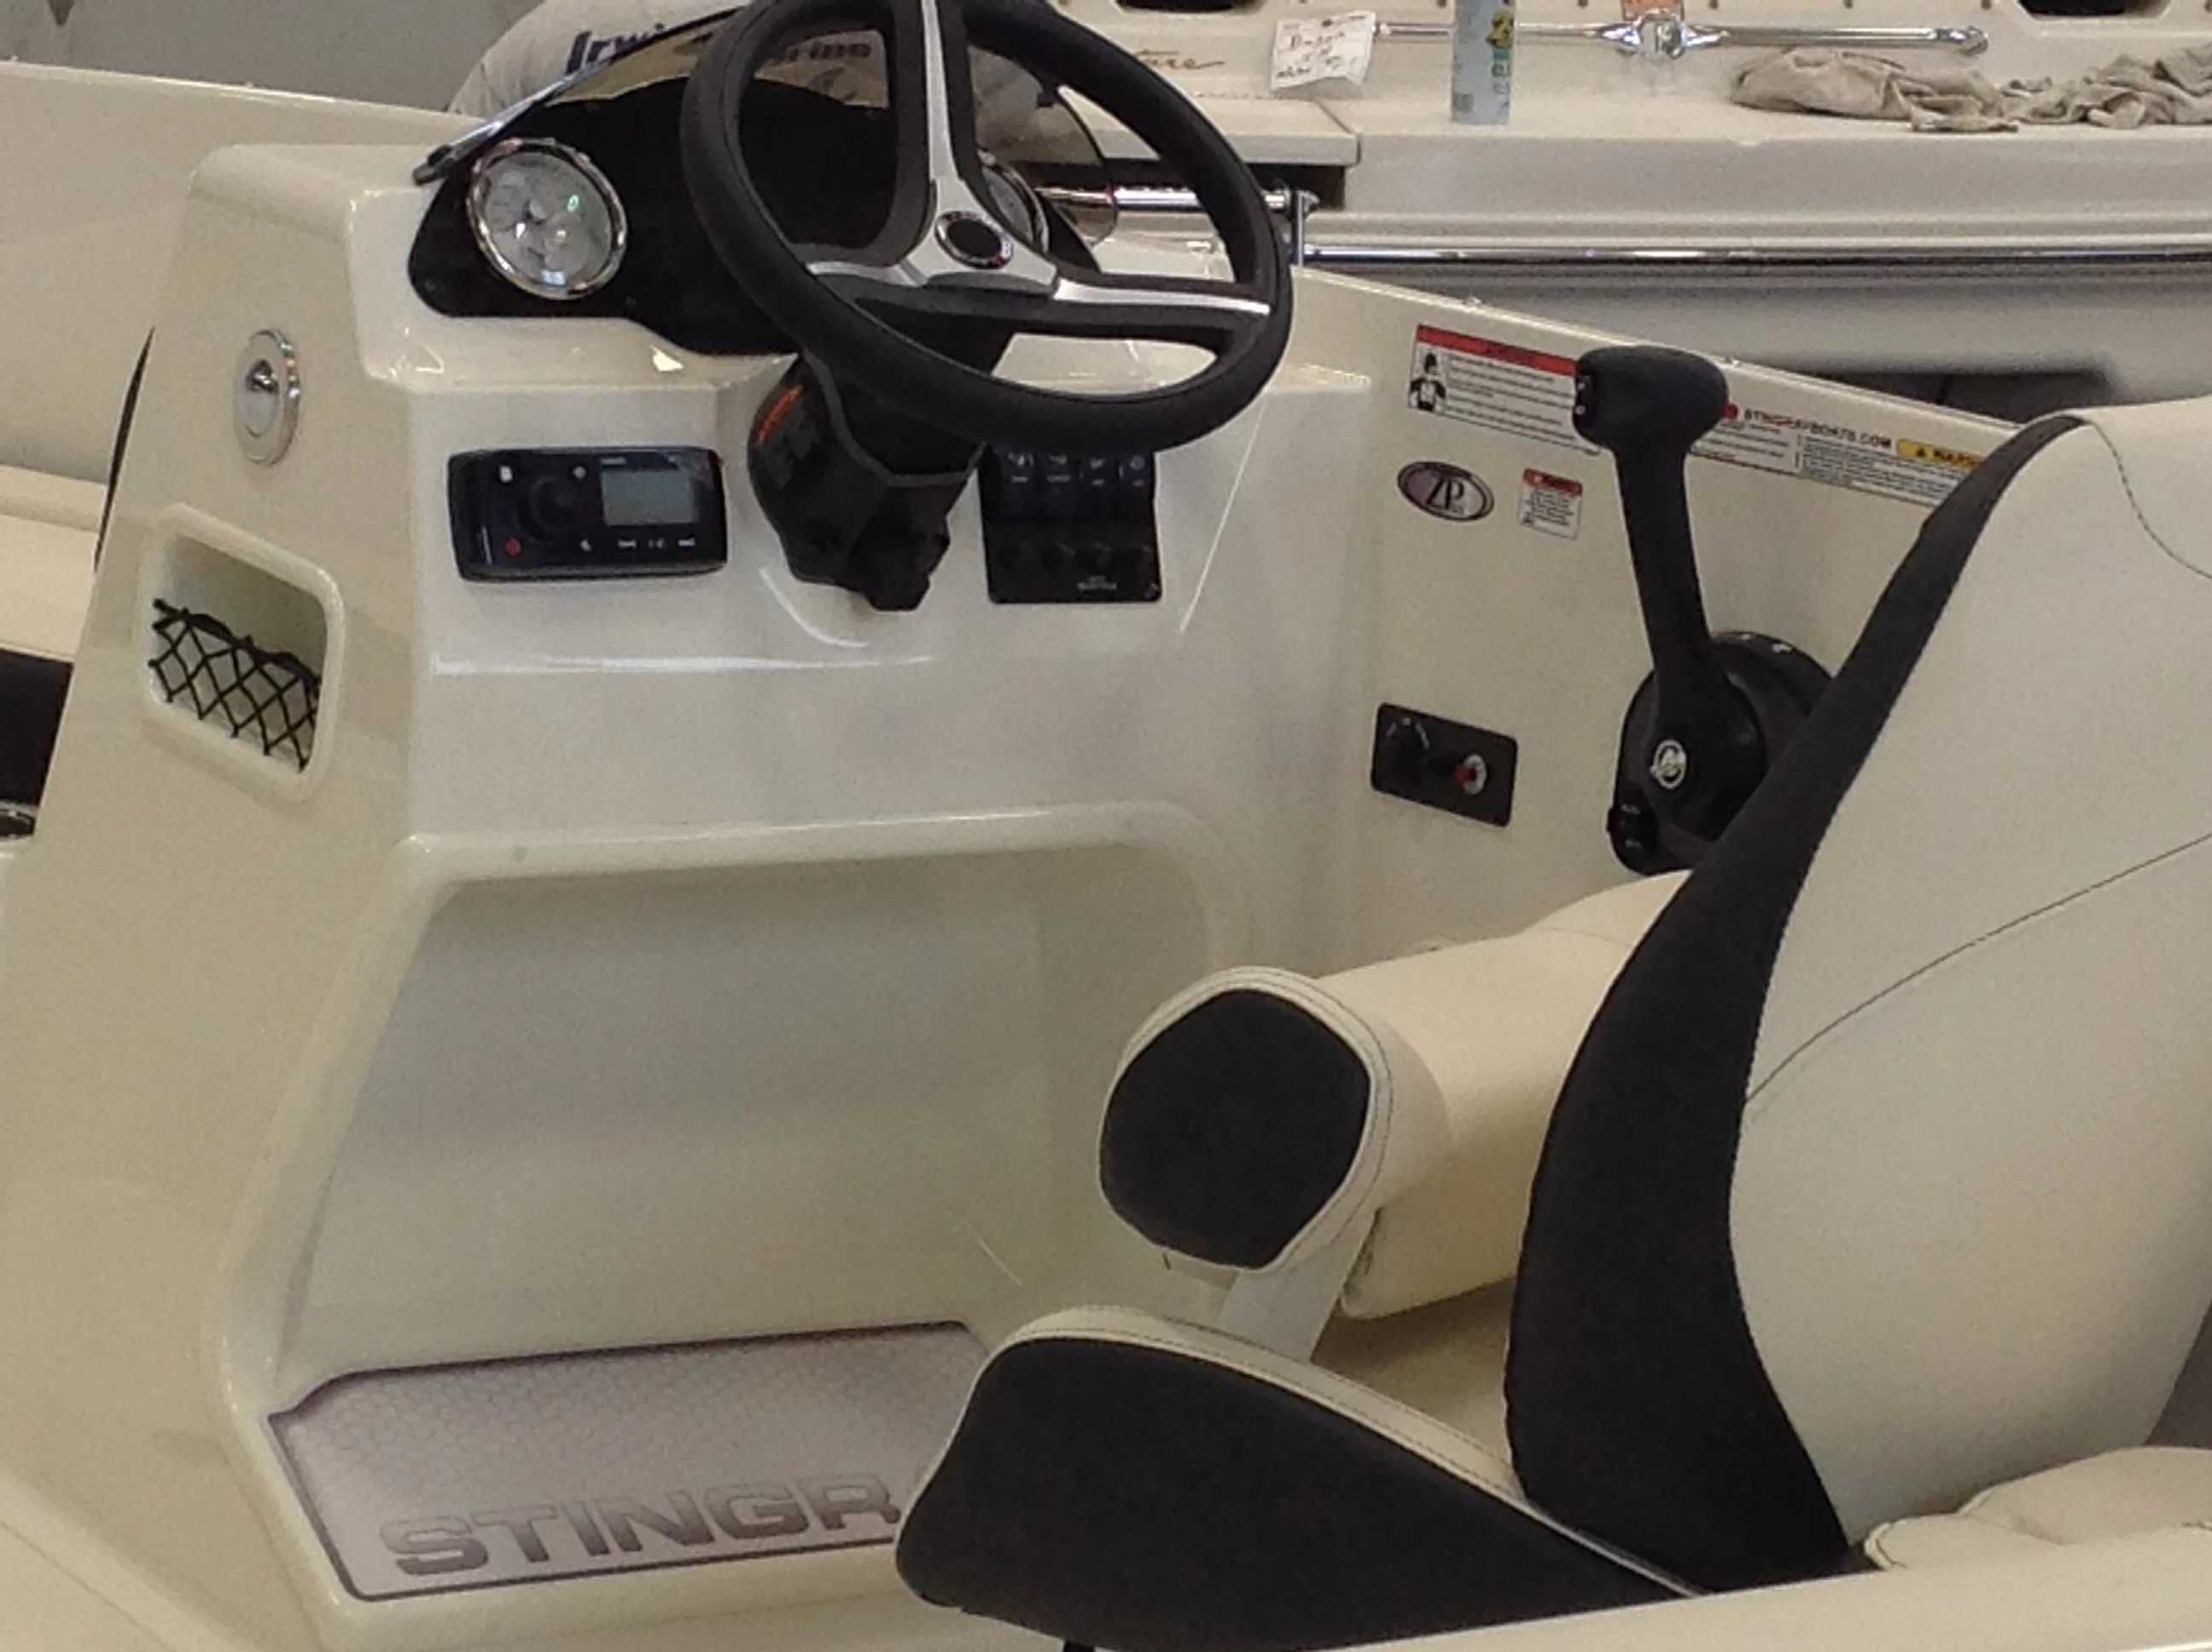 2022 Stingray boat for sale, model of the boat is 172sc & Image # 12 of 17